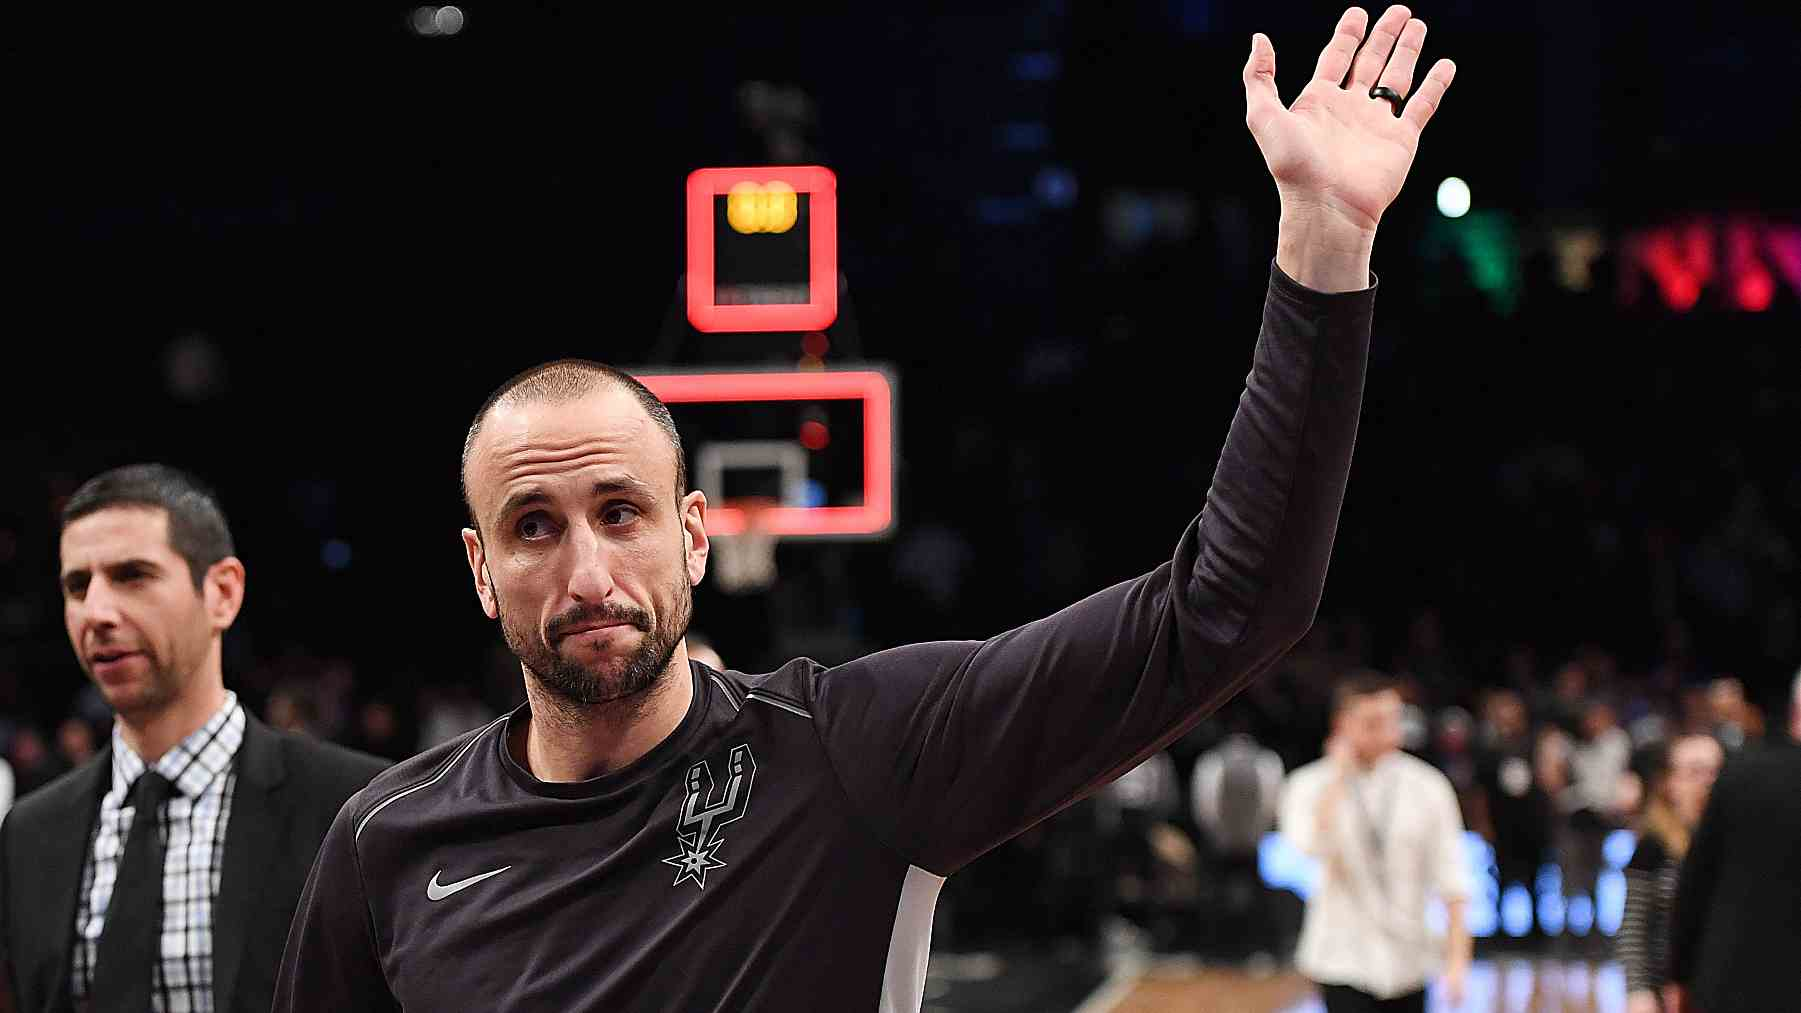 NBA: Spurs Manu Ginobili retires after 16 years in league